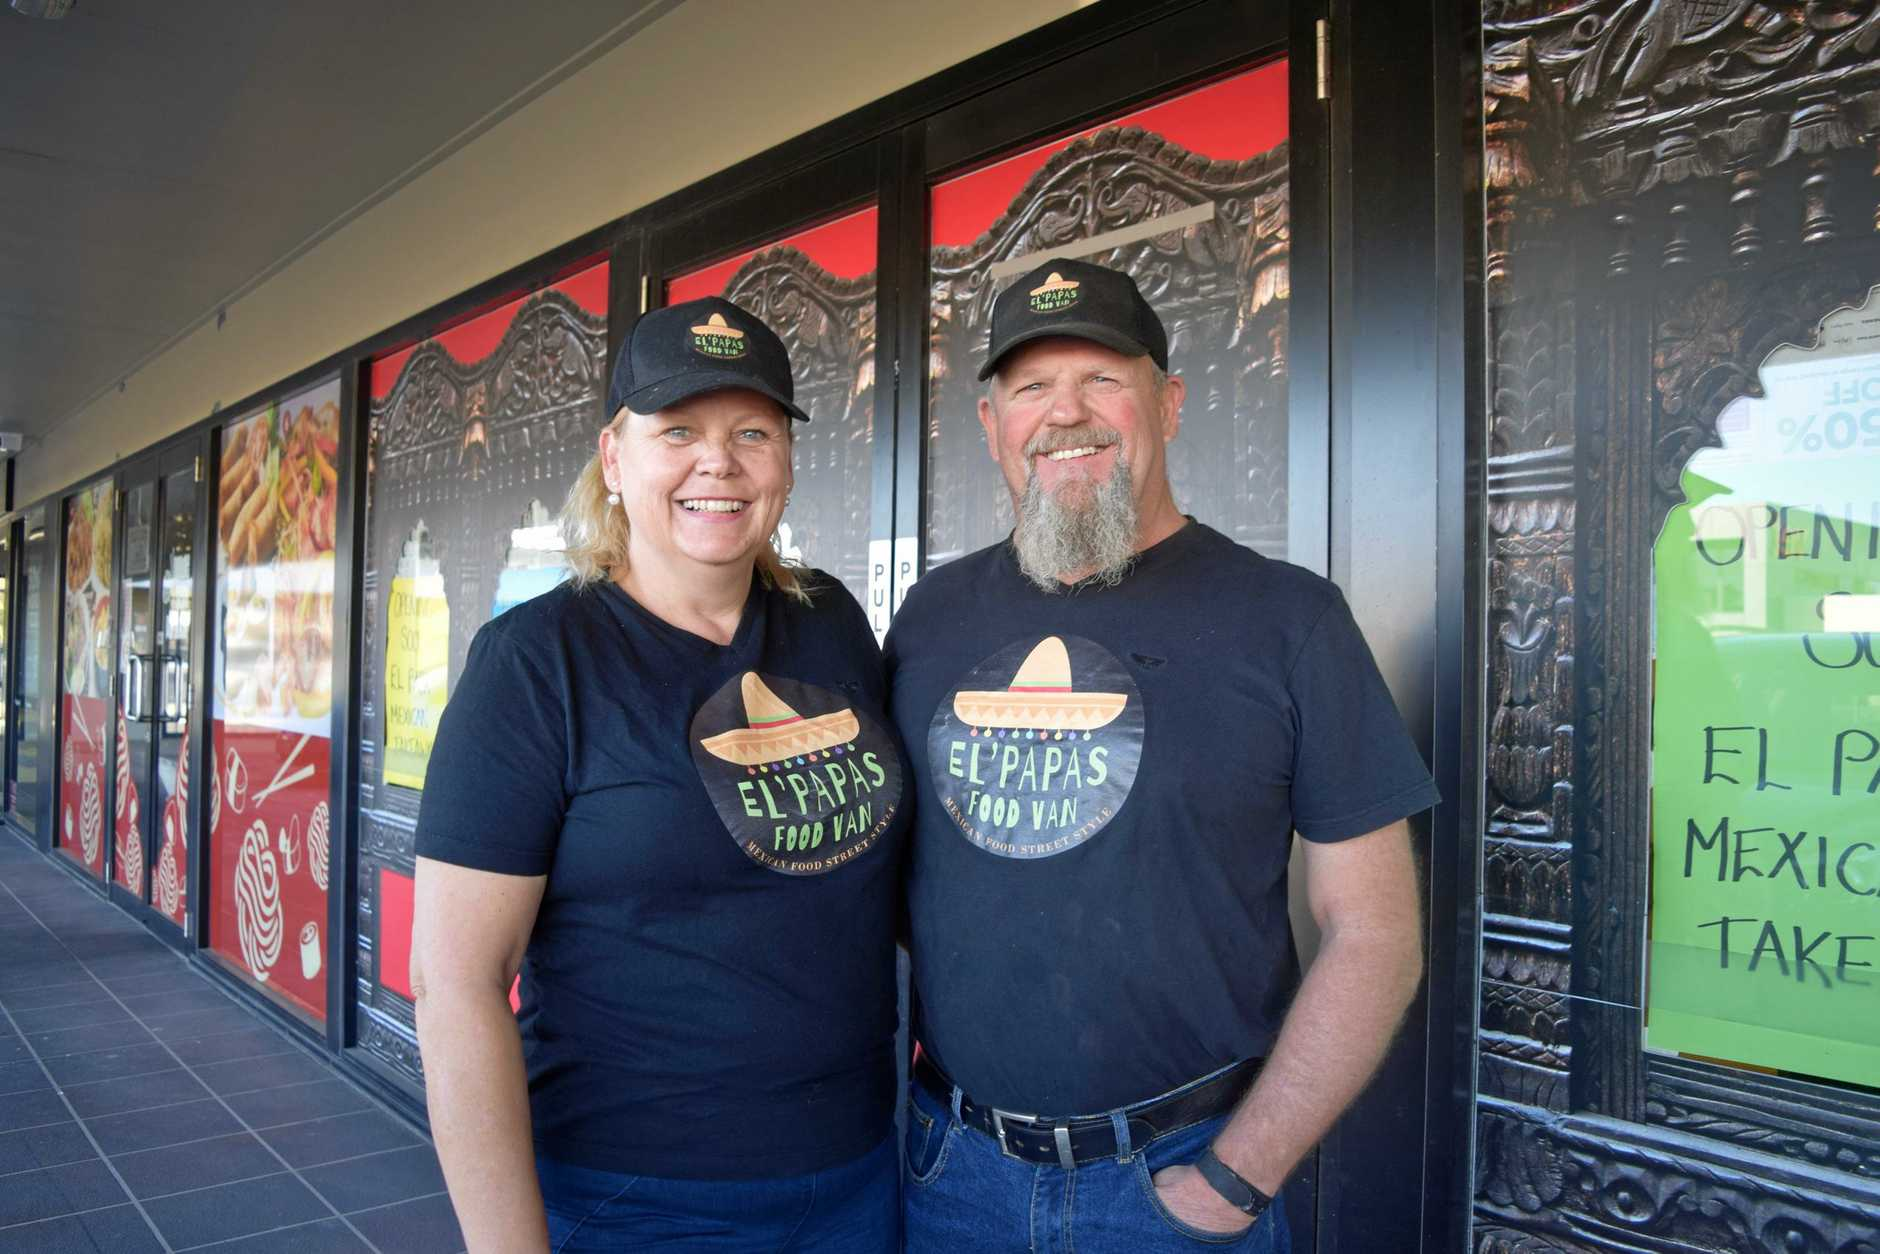 Owners of El PAPAS food van Frank and Mandy Shanks are excited to open a permanent takeaway store in Andergrove.